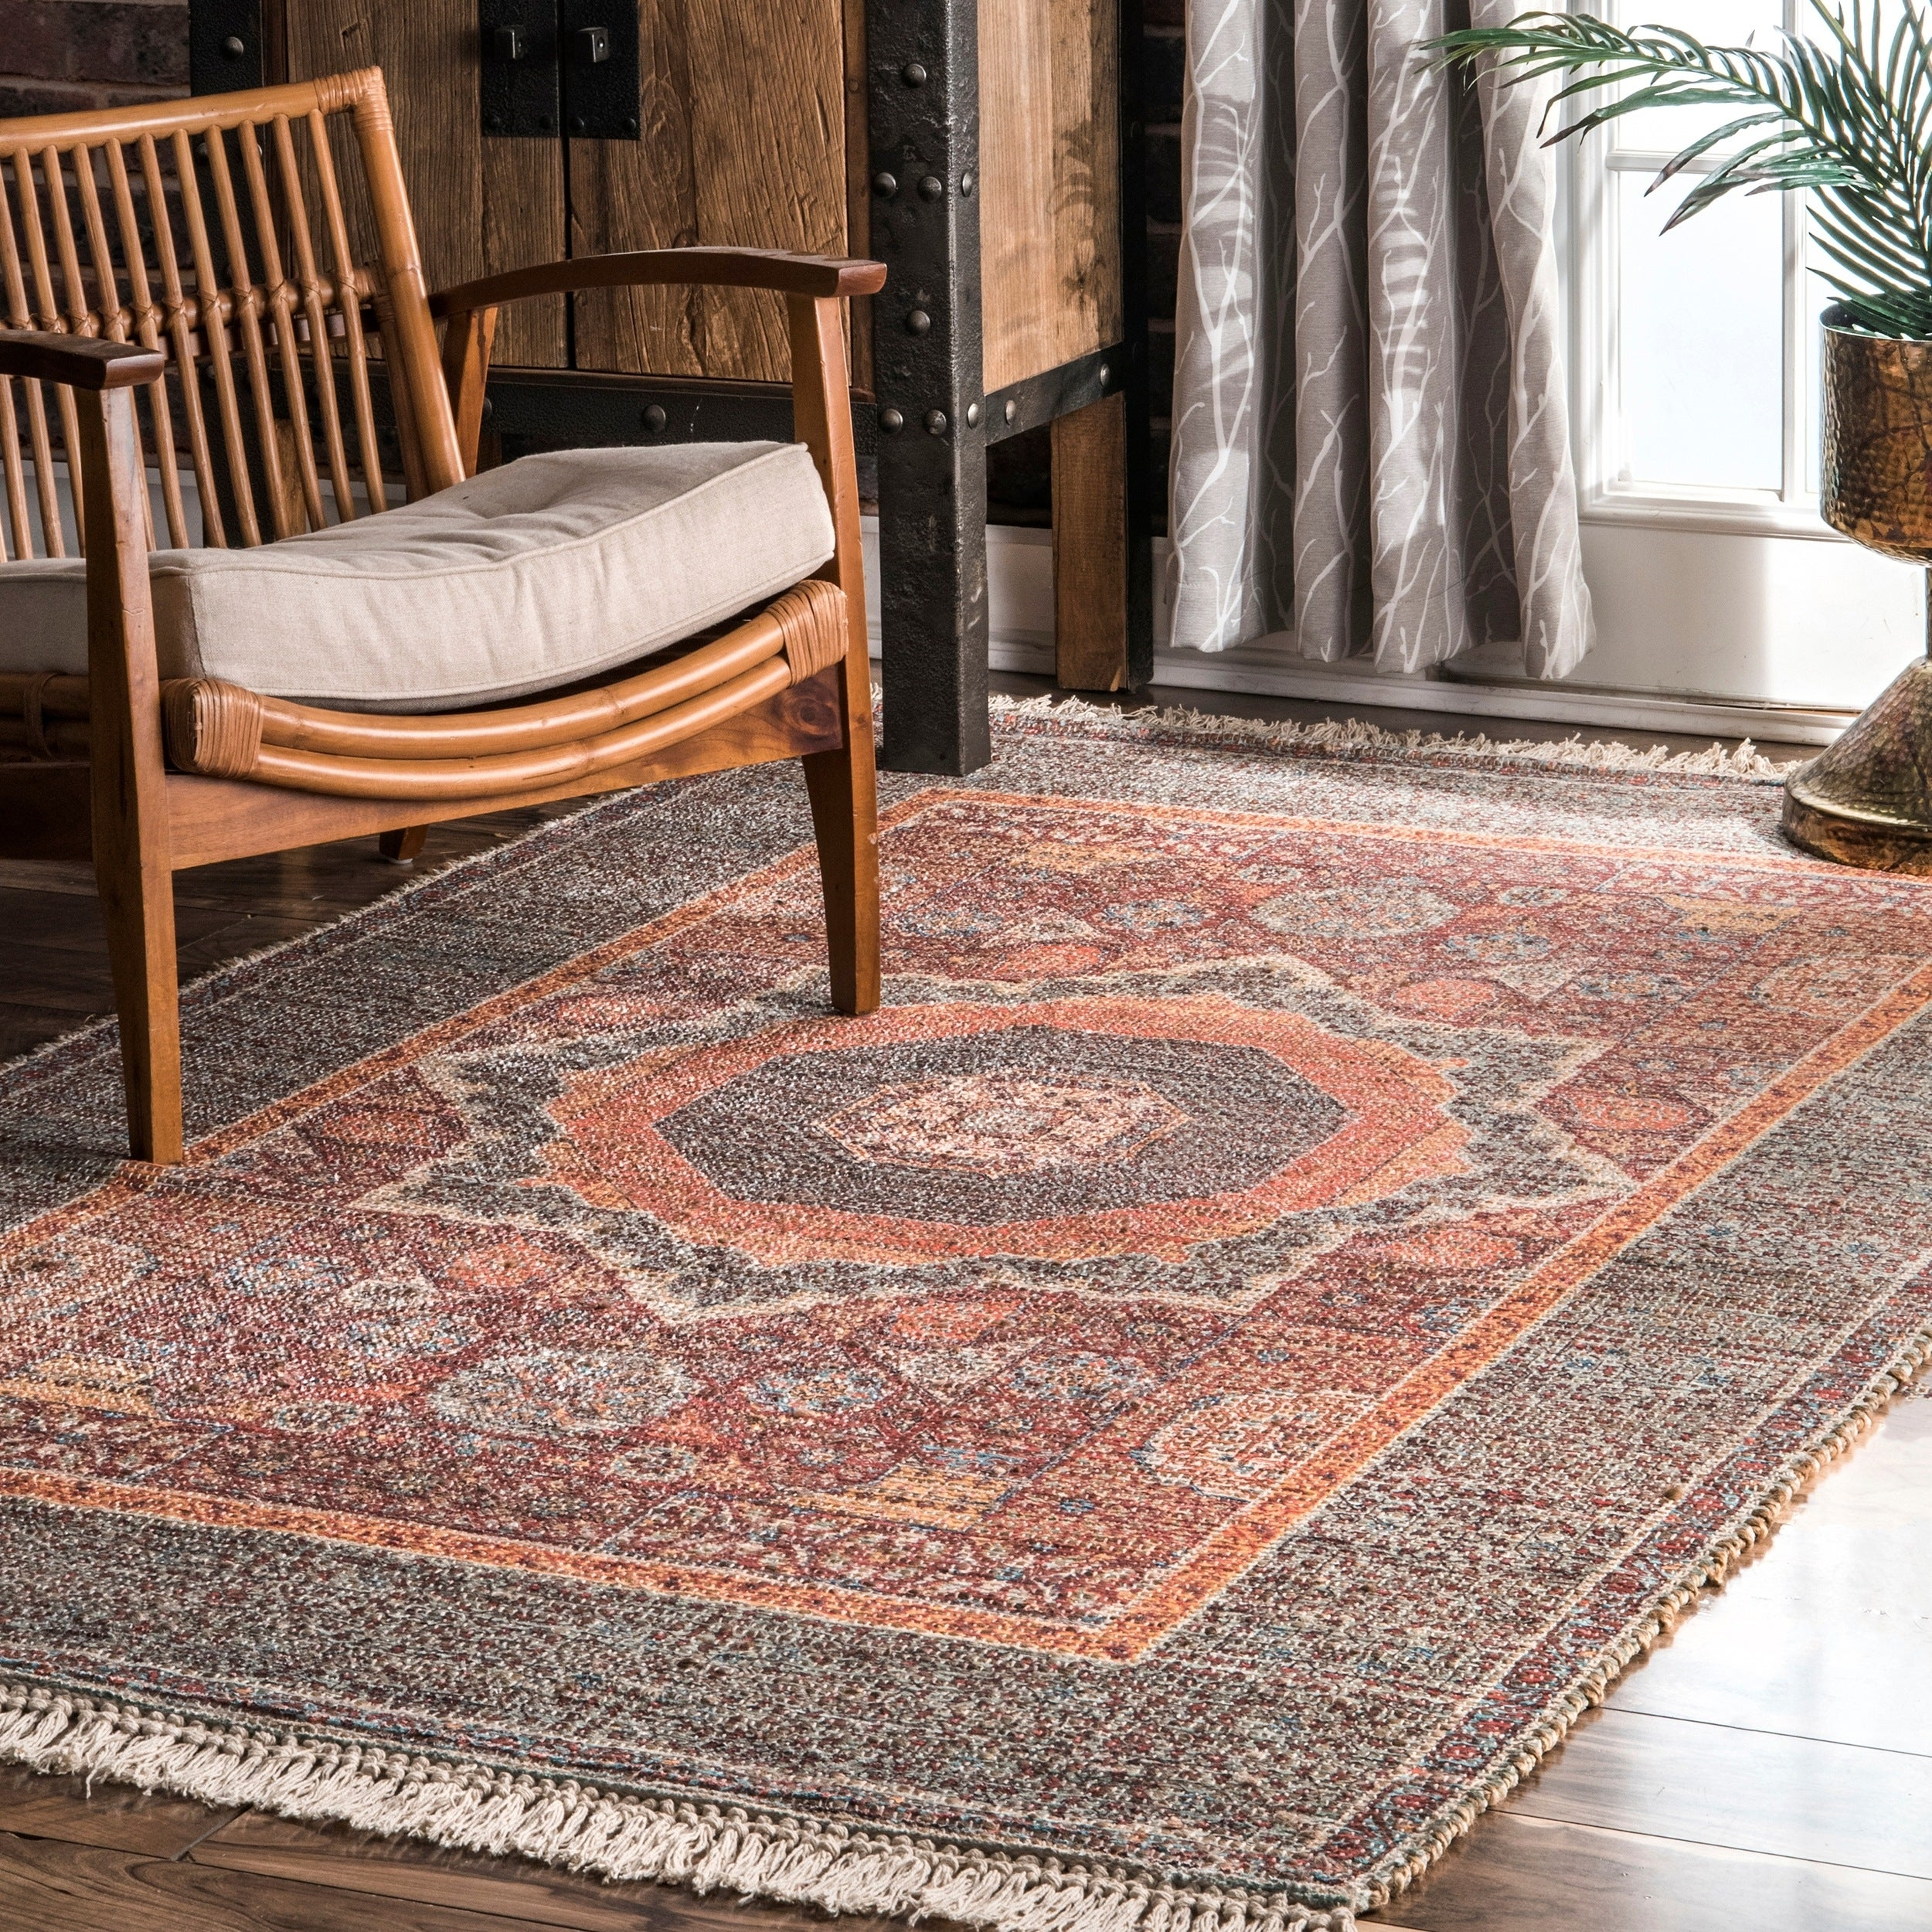 Shop For Nuloom Flatweave Traditional Vintage Medallion Tassel Jute Blend Efrain Area Rug Get Free Delivery On Everything At Overstock Your Online Home Decor Store Get 5 In Rewards With Club O 28135727